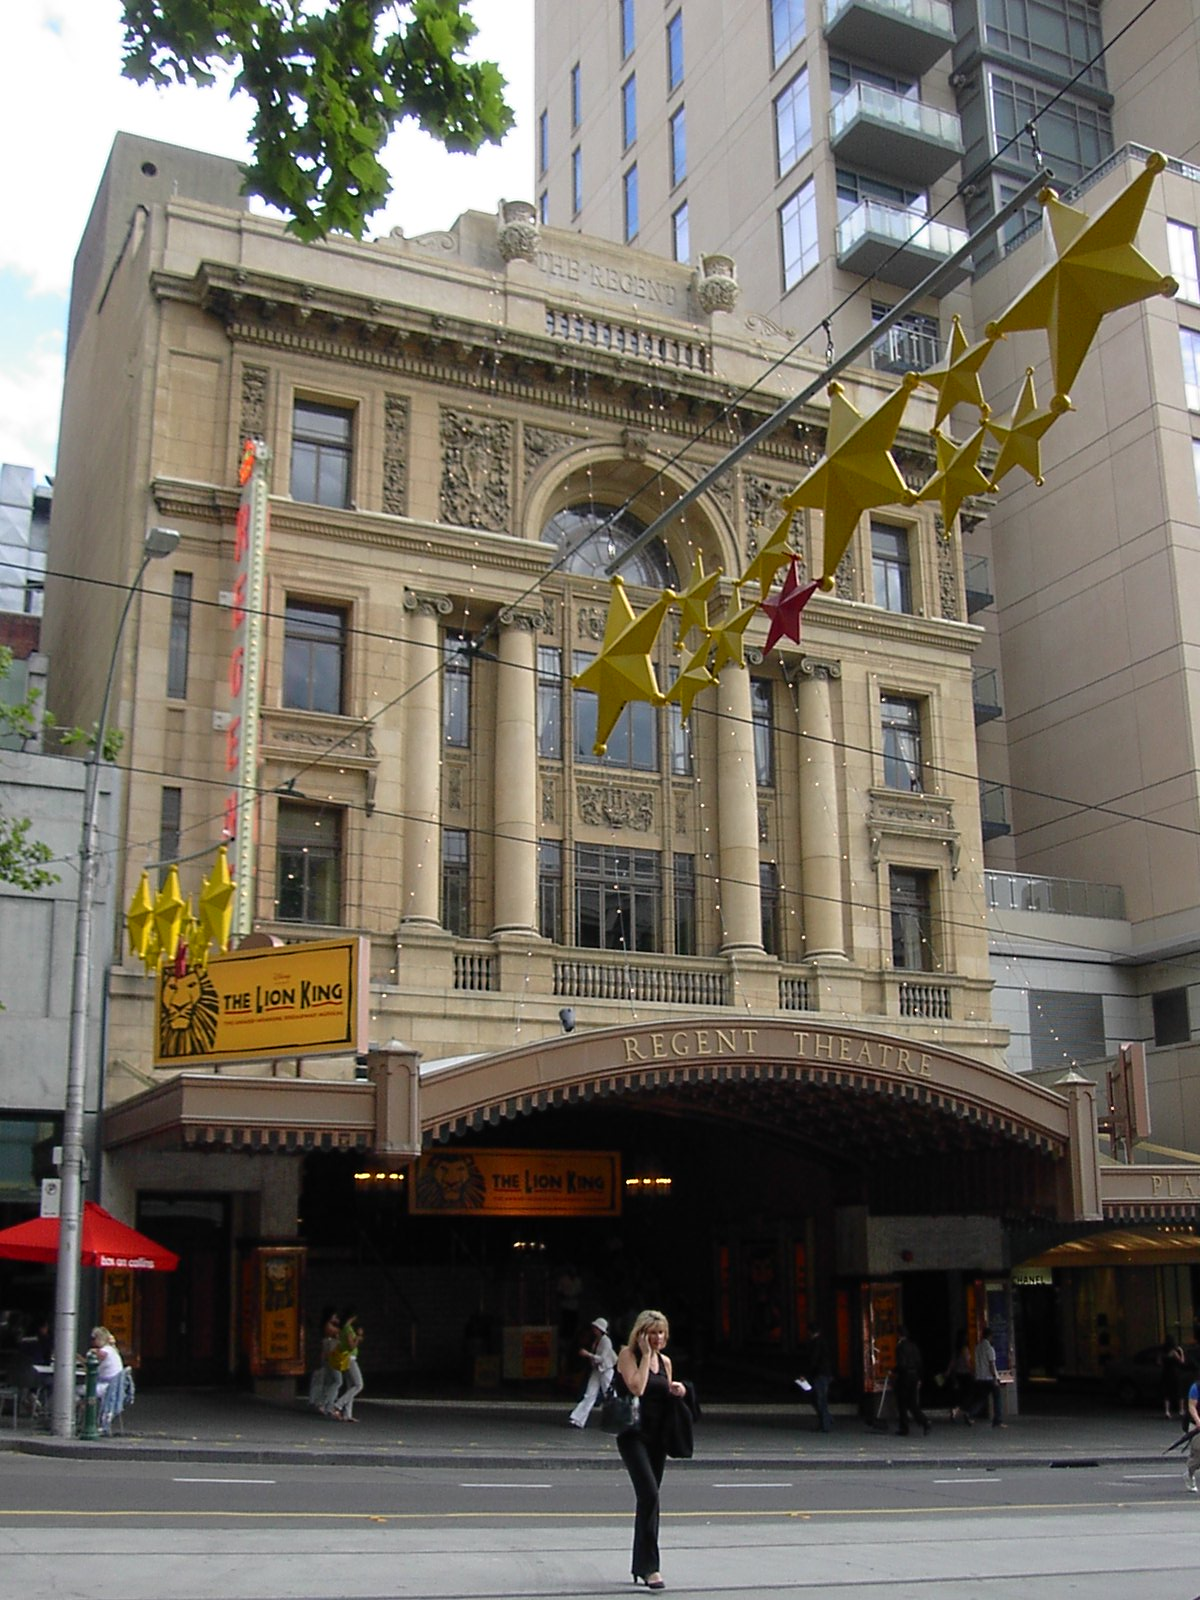 1000+ images about Theatres on Pinterest | Theater, Opera ...